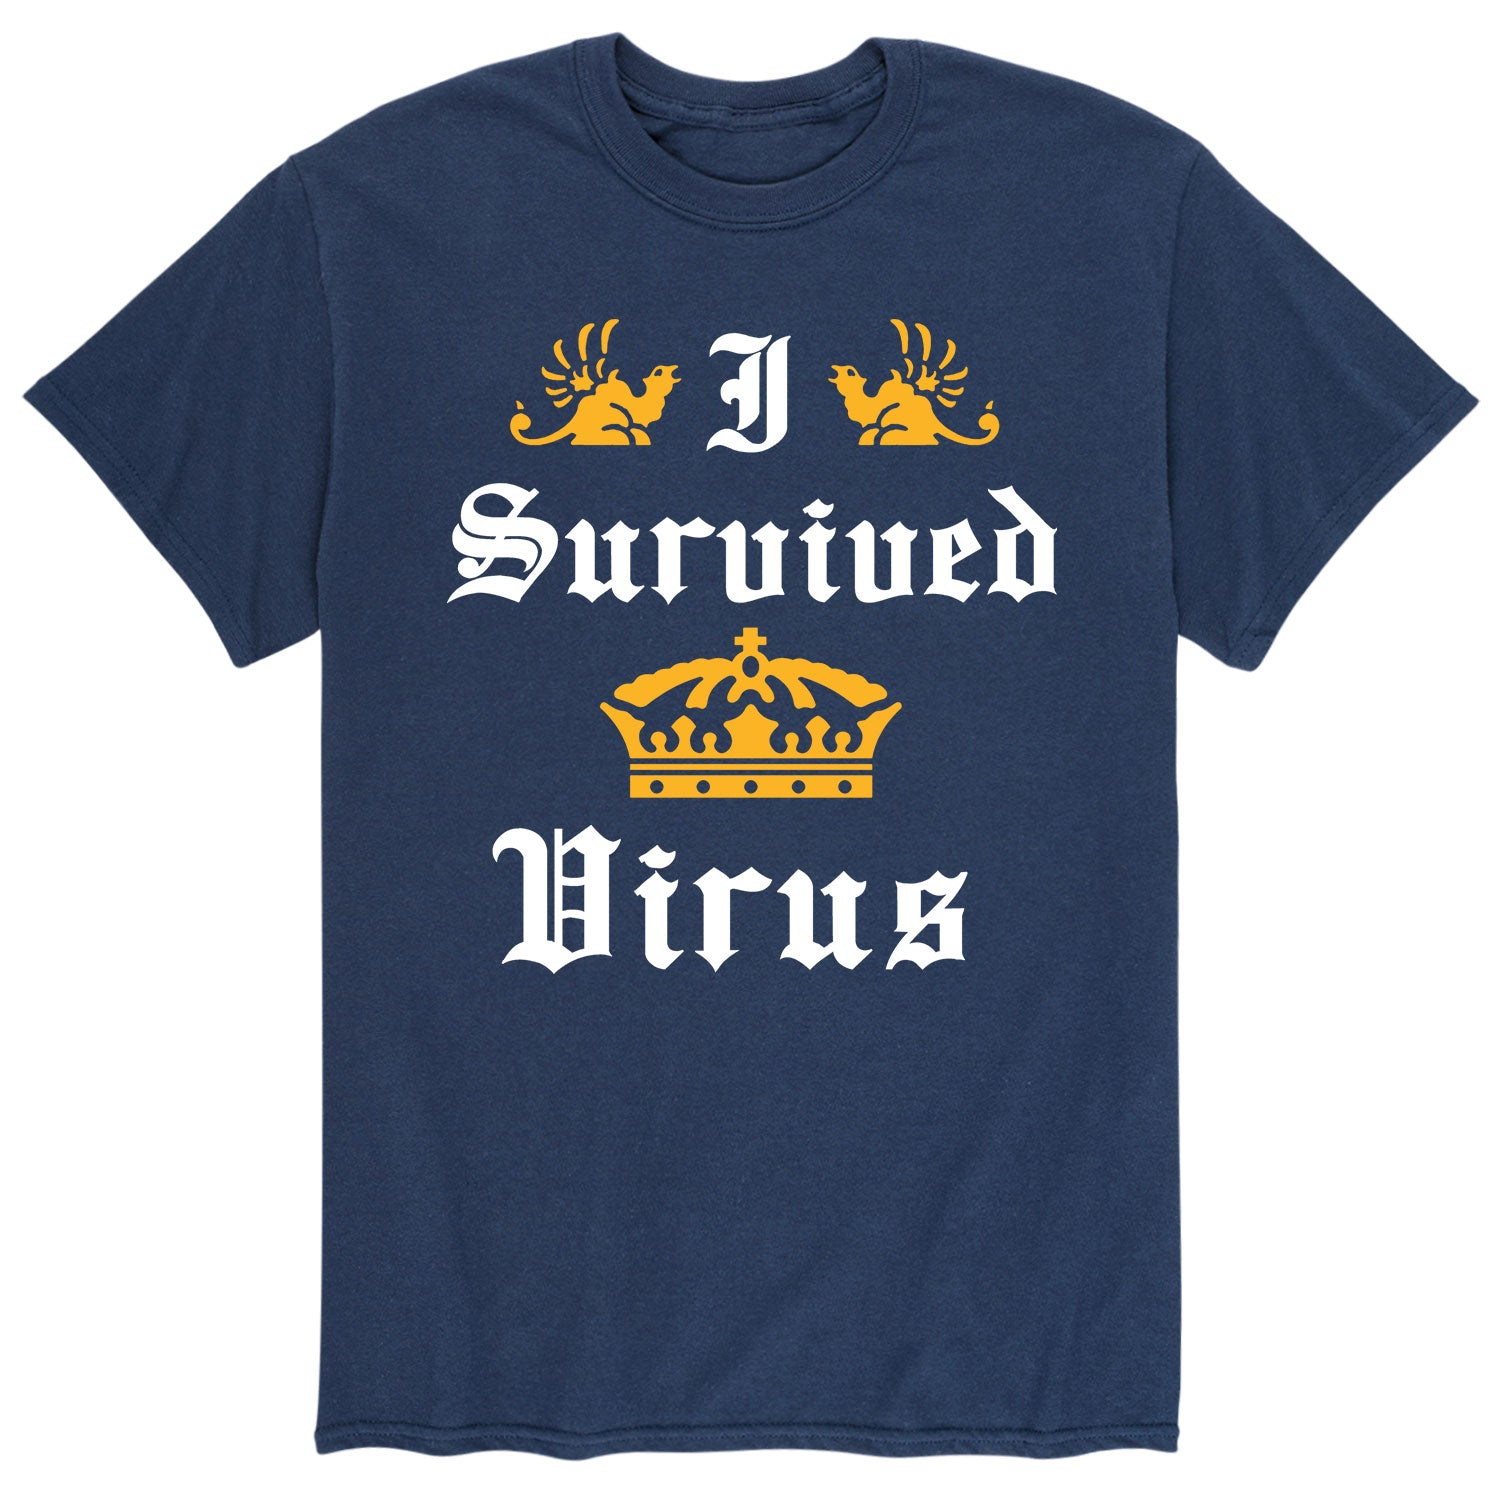 I Survived Coronavirus - Men's Short Sleeve T-Shirt